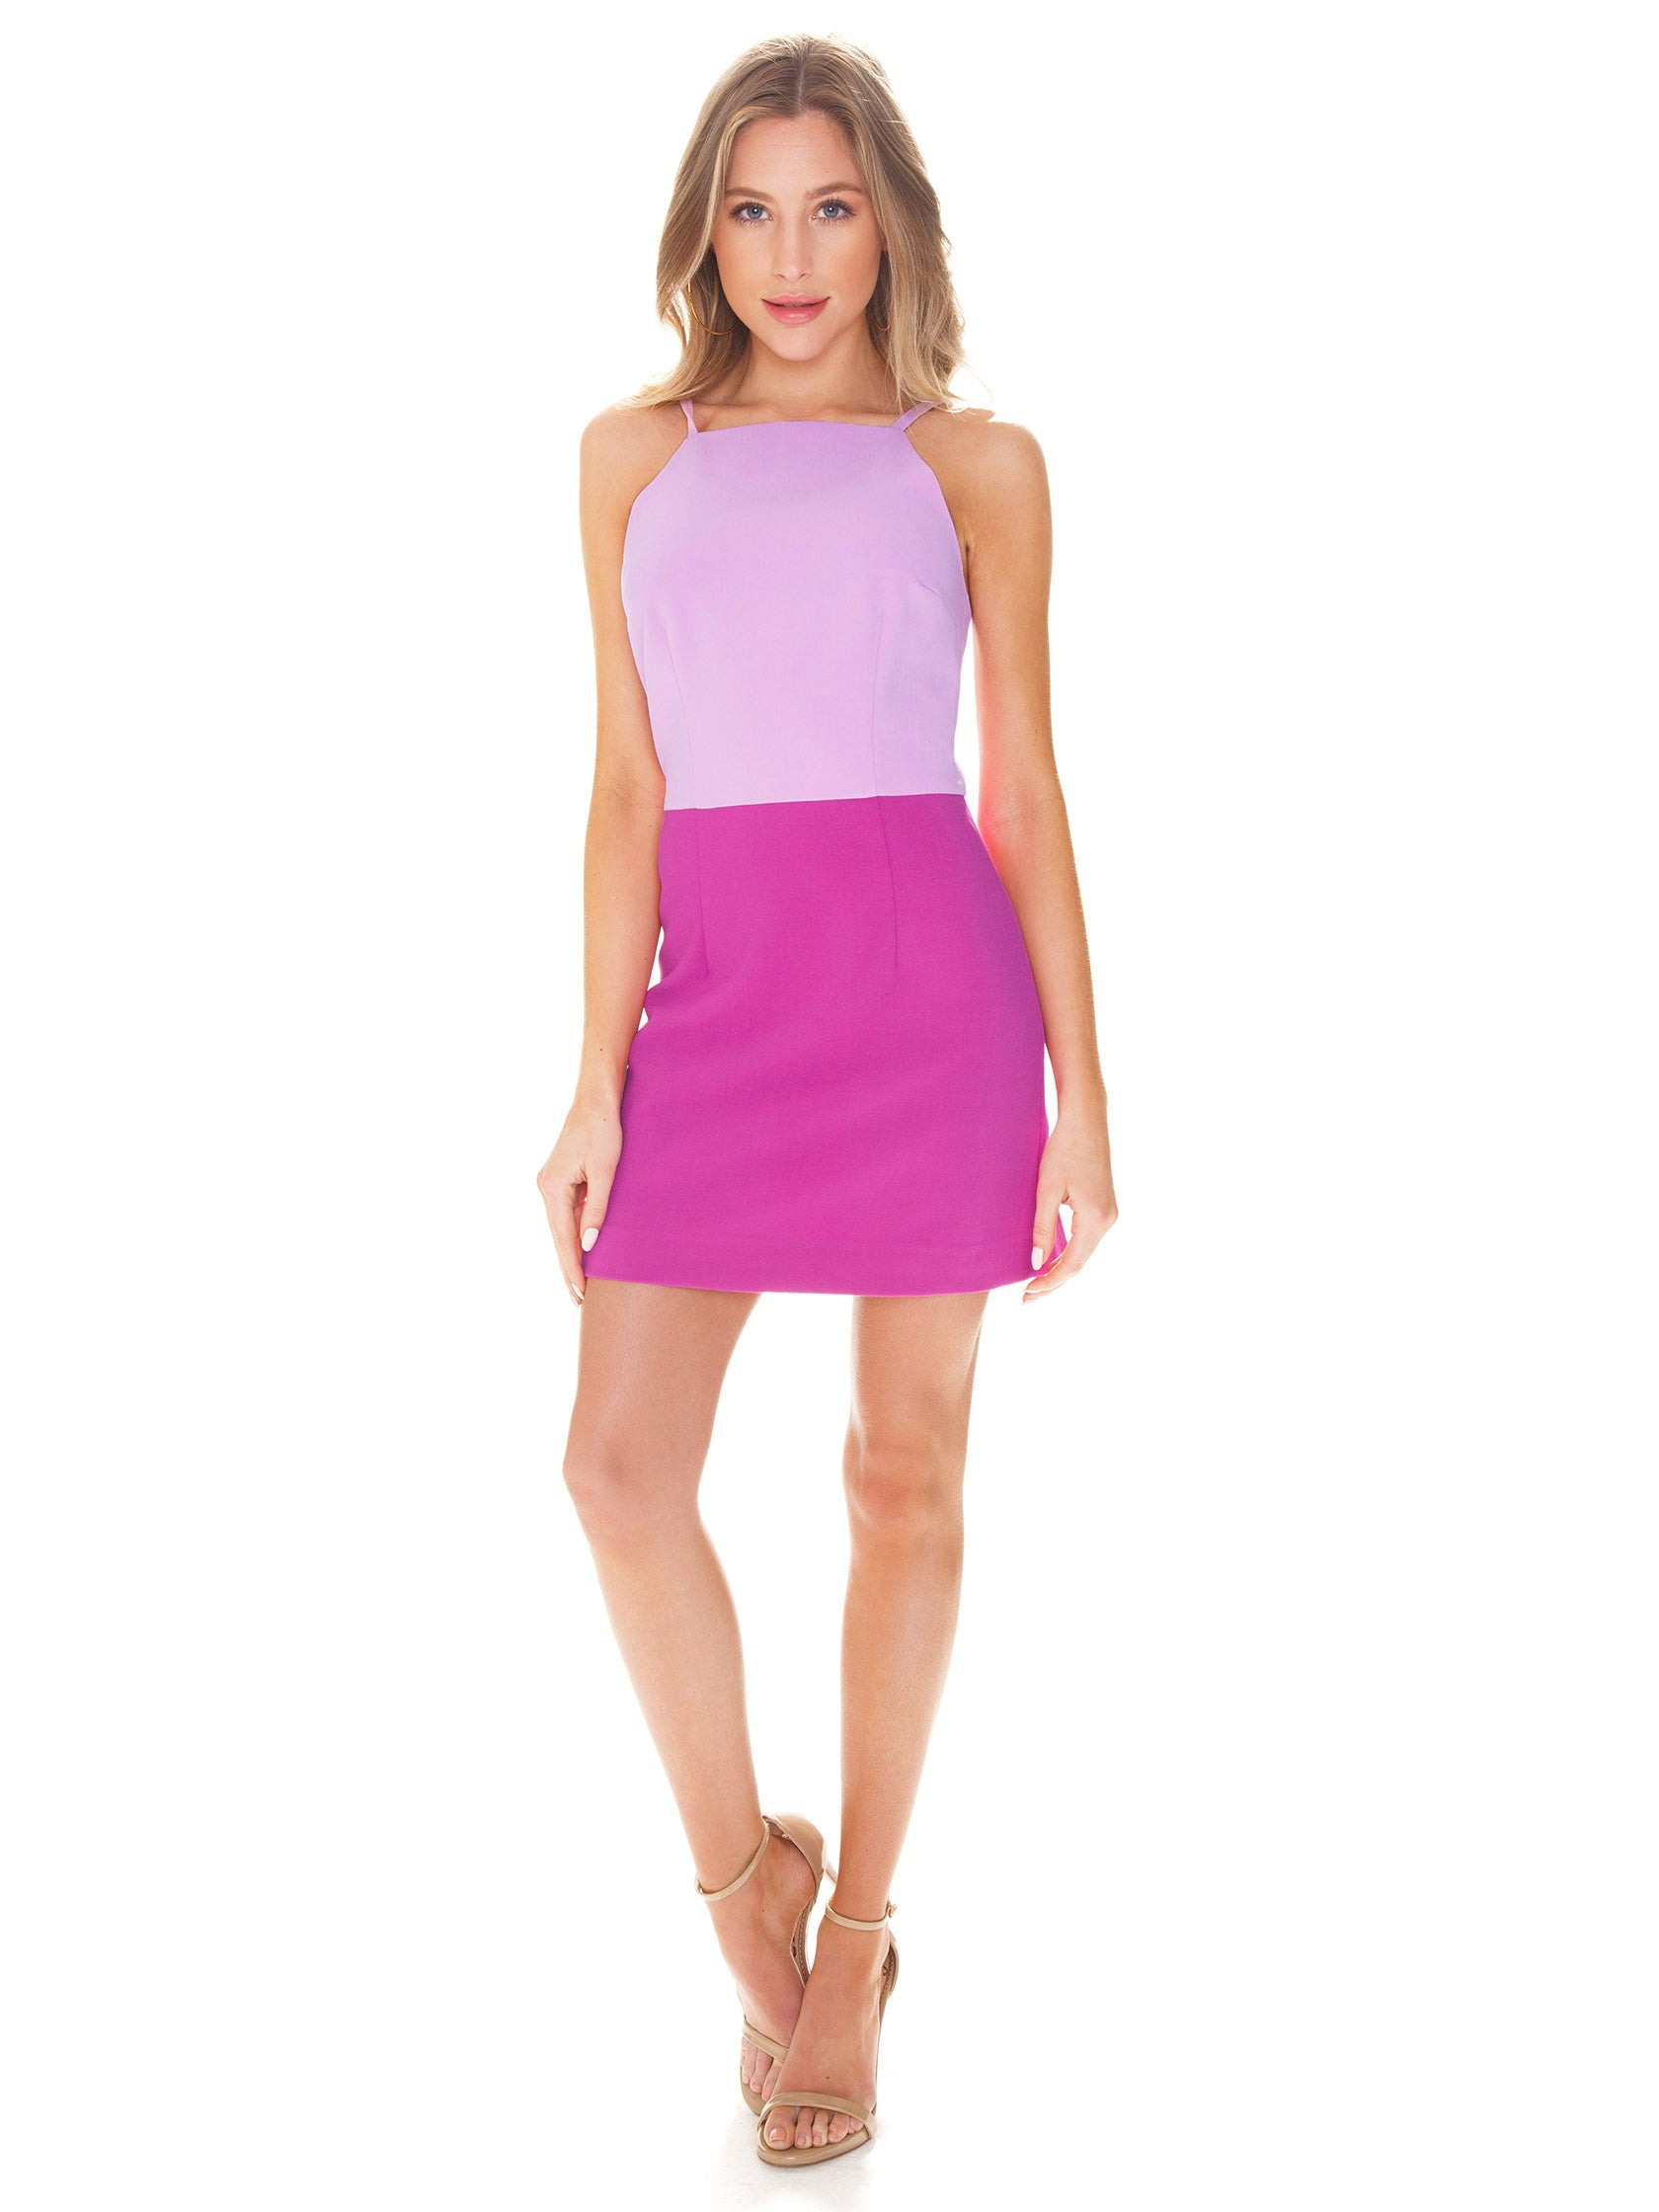 Girl outfit in a dress rental from French Connection called Color Block Whisper Dress